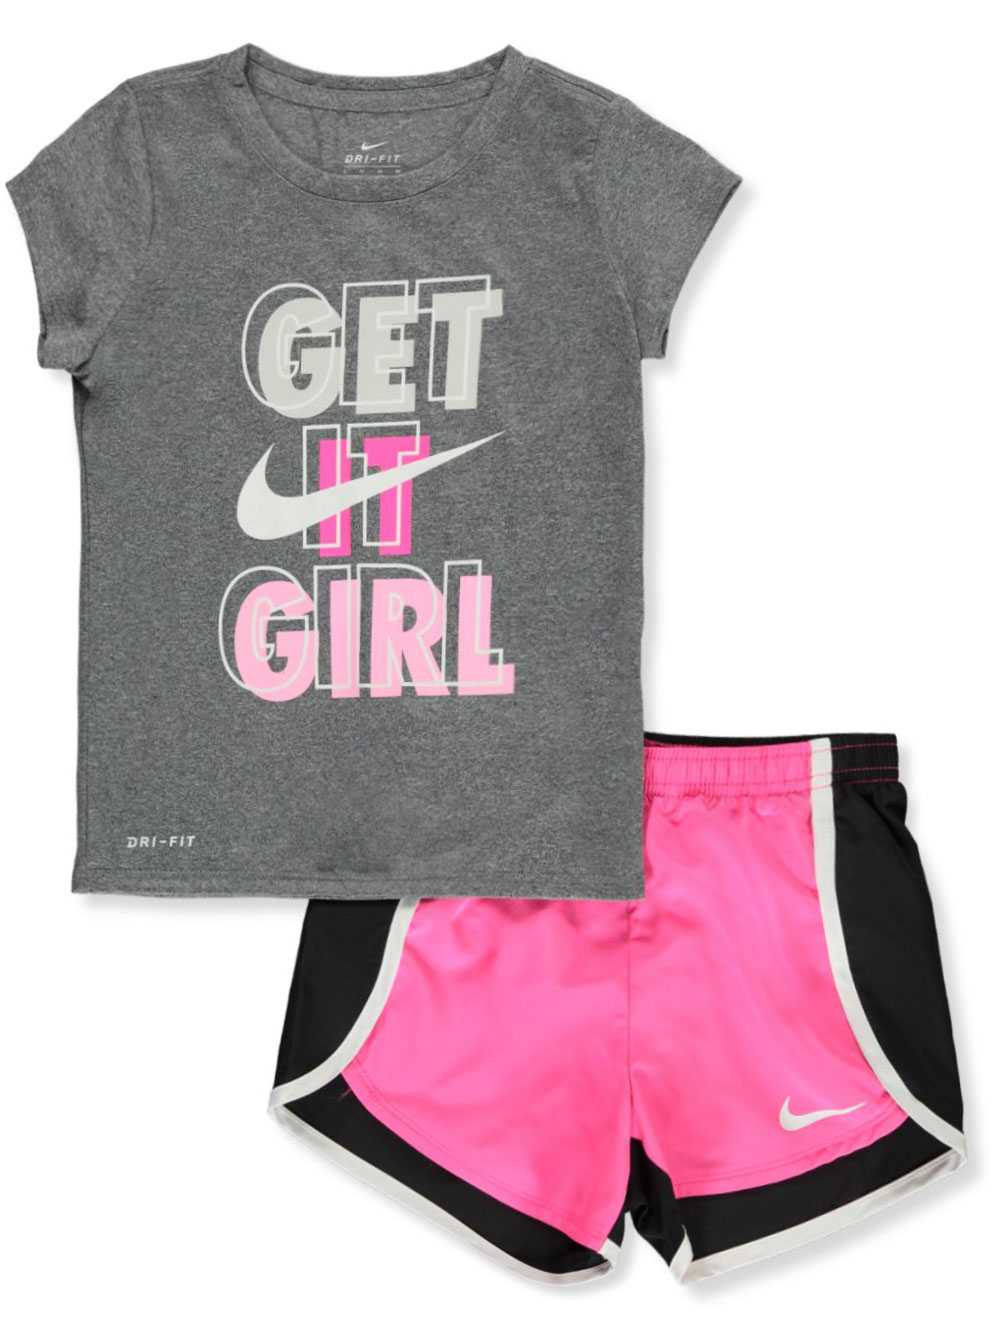 Girls' Dri-Fit 2-Piece Shorts Set Outfit